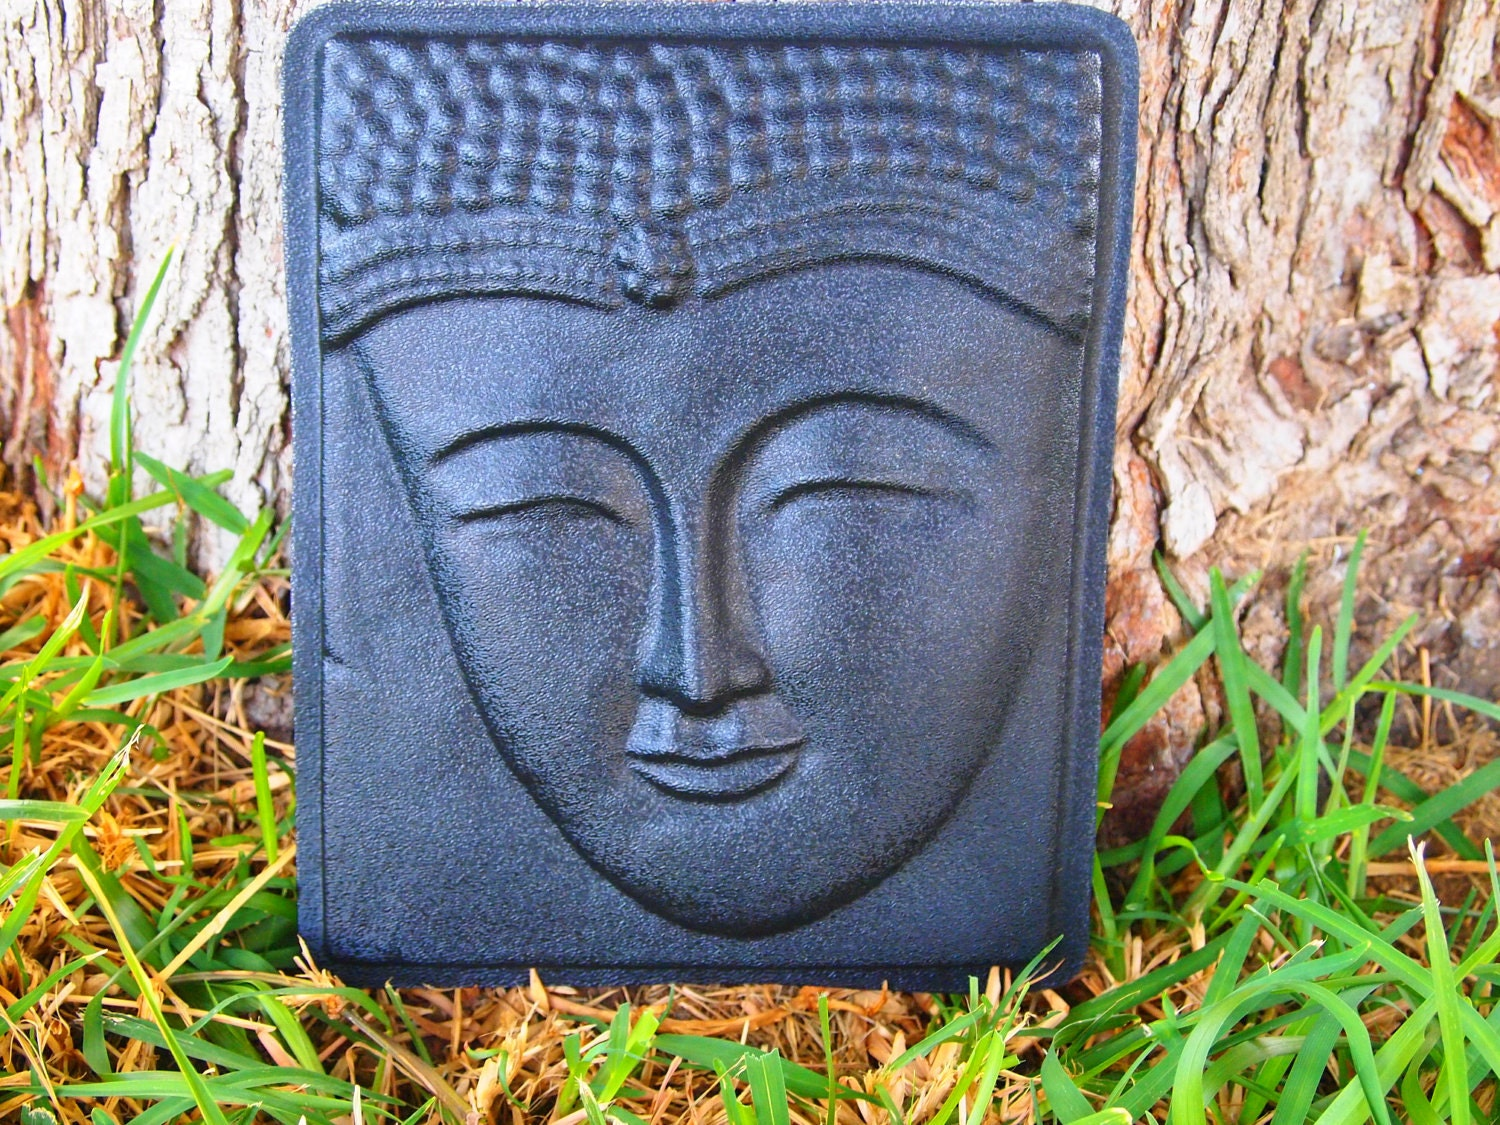 Buddha Wall Plaque ABS Plastic Mold Plaster by KAPCREATIONS